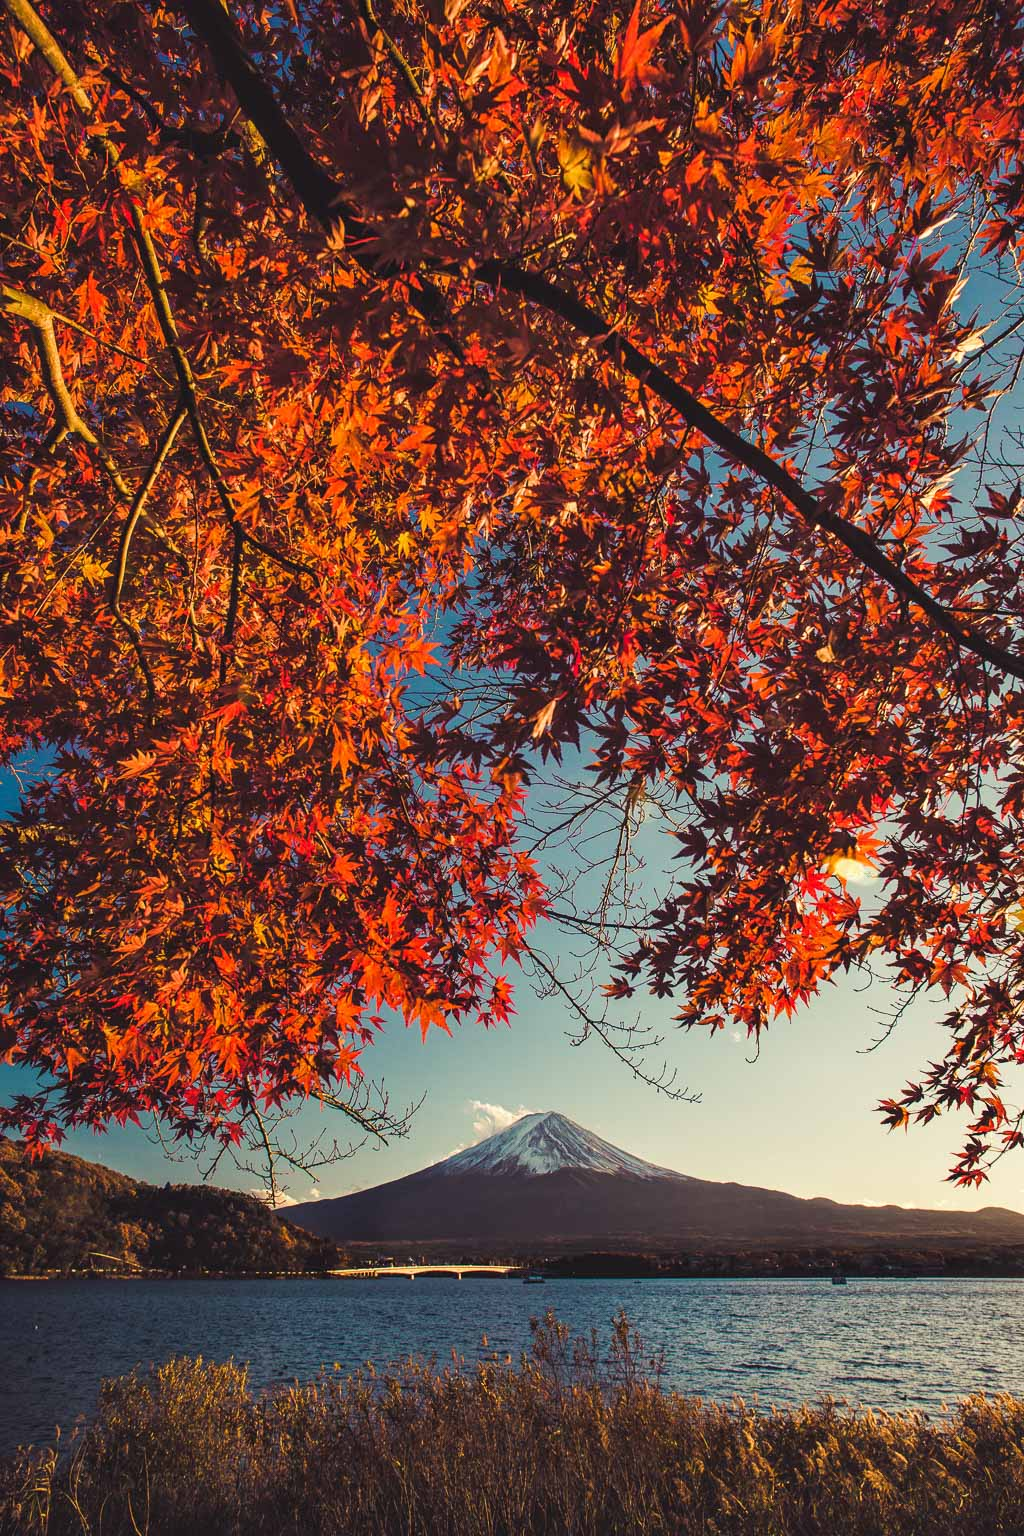 Japan Autumn Tour NOVember - Come experience Japan in Autumn! Dates: Nov 19th - 28th (10 days) Includes Monkeys in Hot Spring.USD $3999 (twin share)